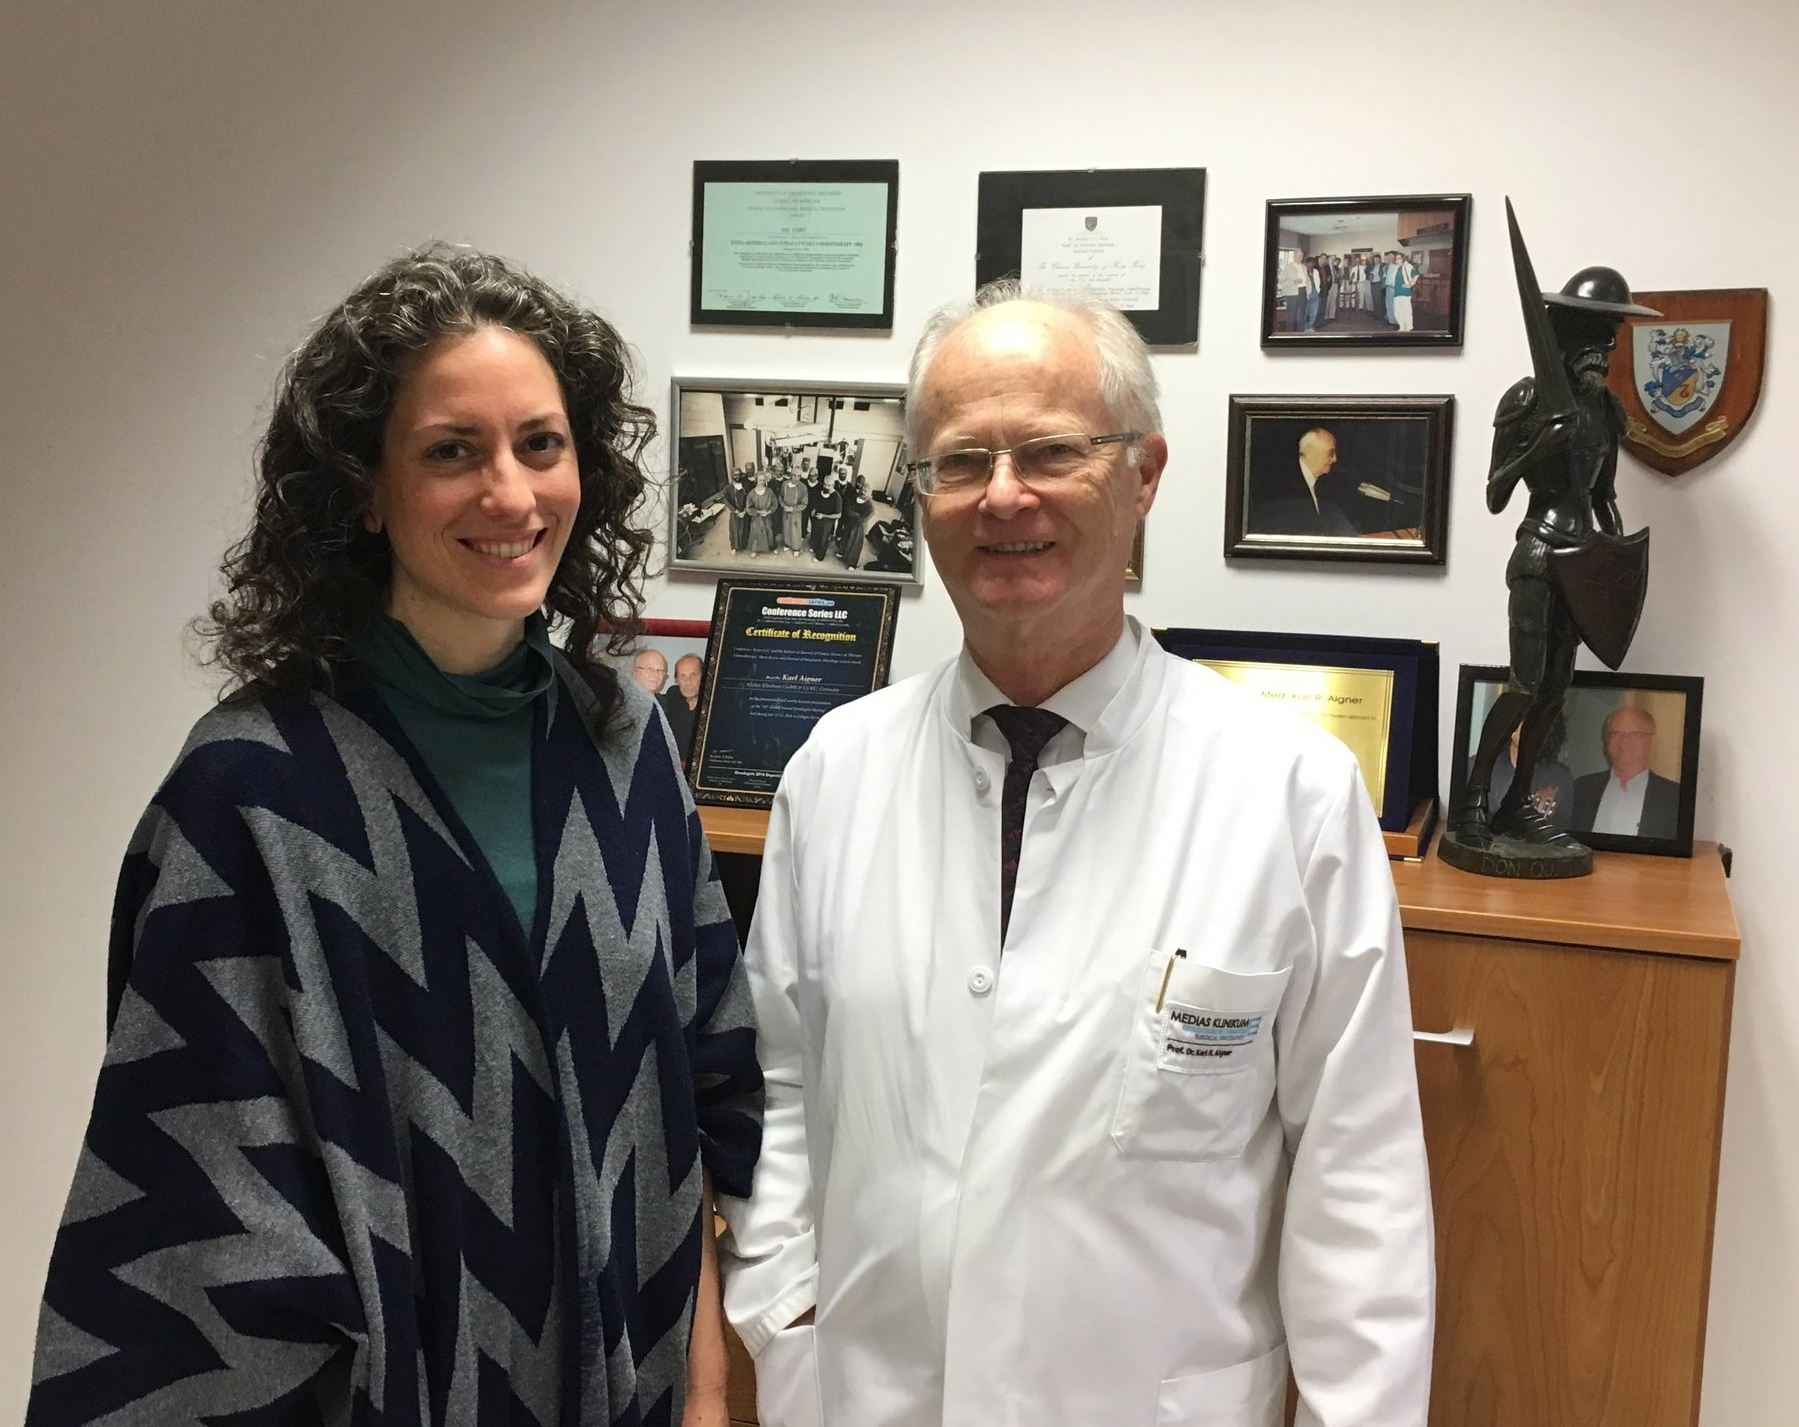 Dr. Karl Aigner and Colleen Flowers in November 2017